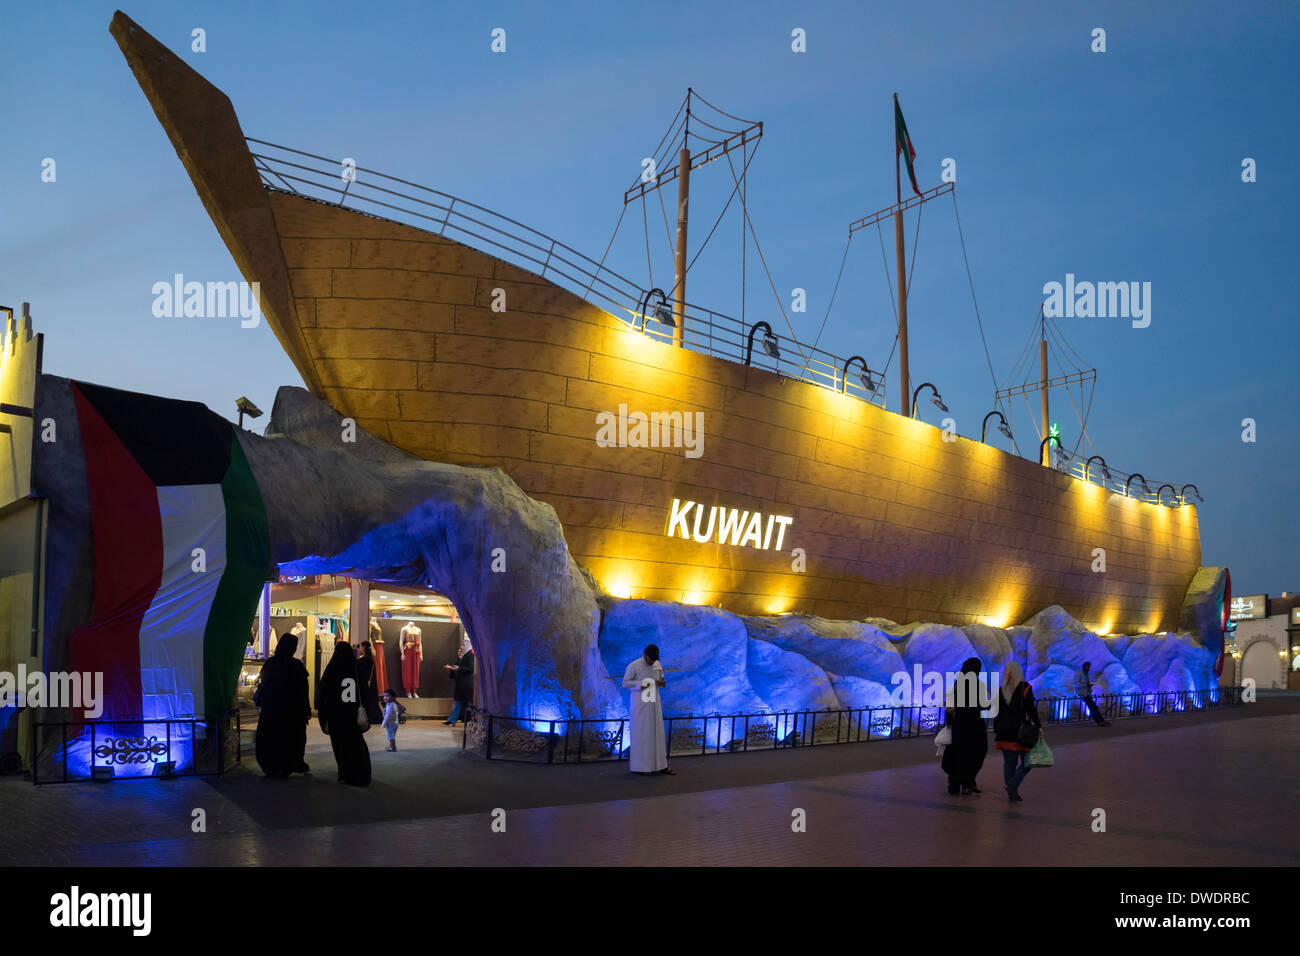 Kuwait Pavilion at Global Village tourist cultural attraction in Dubai United Arab Emirates - Stock Image